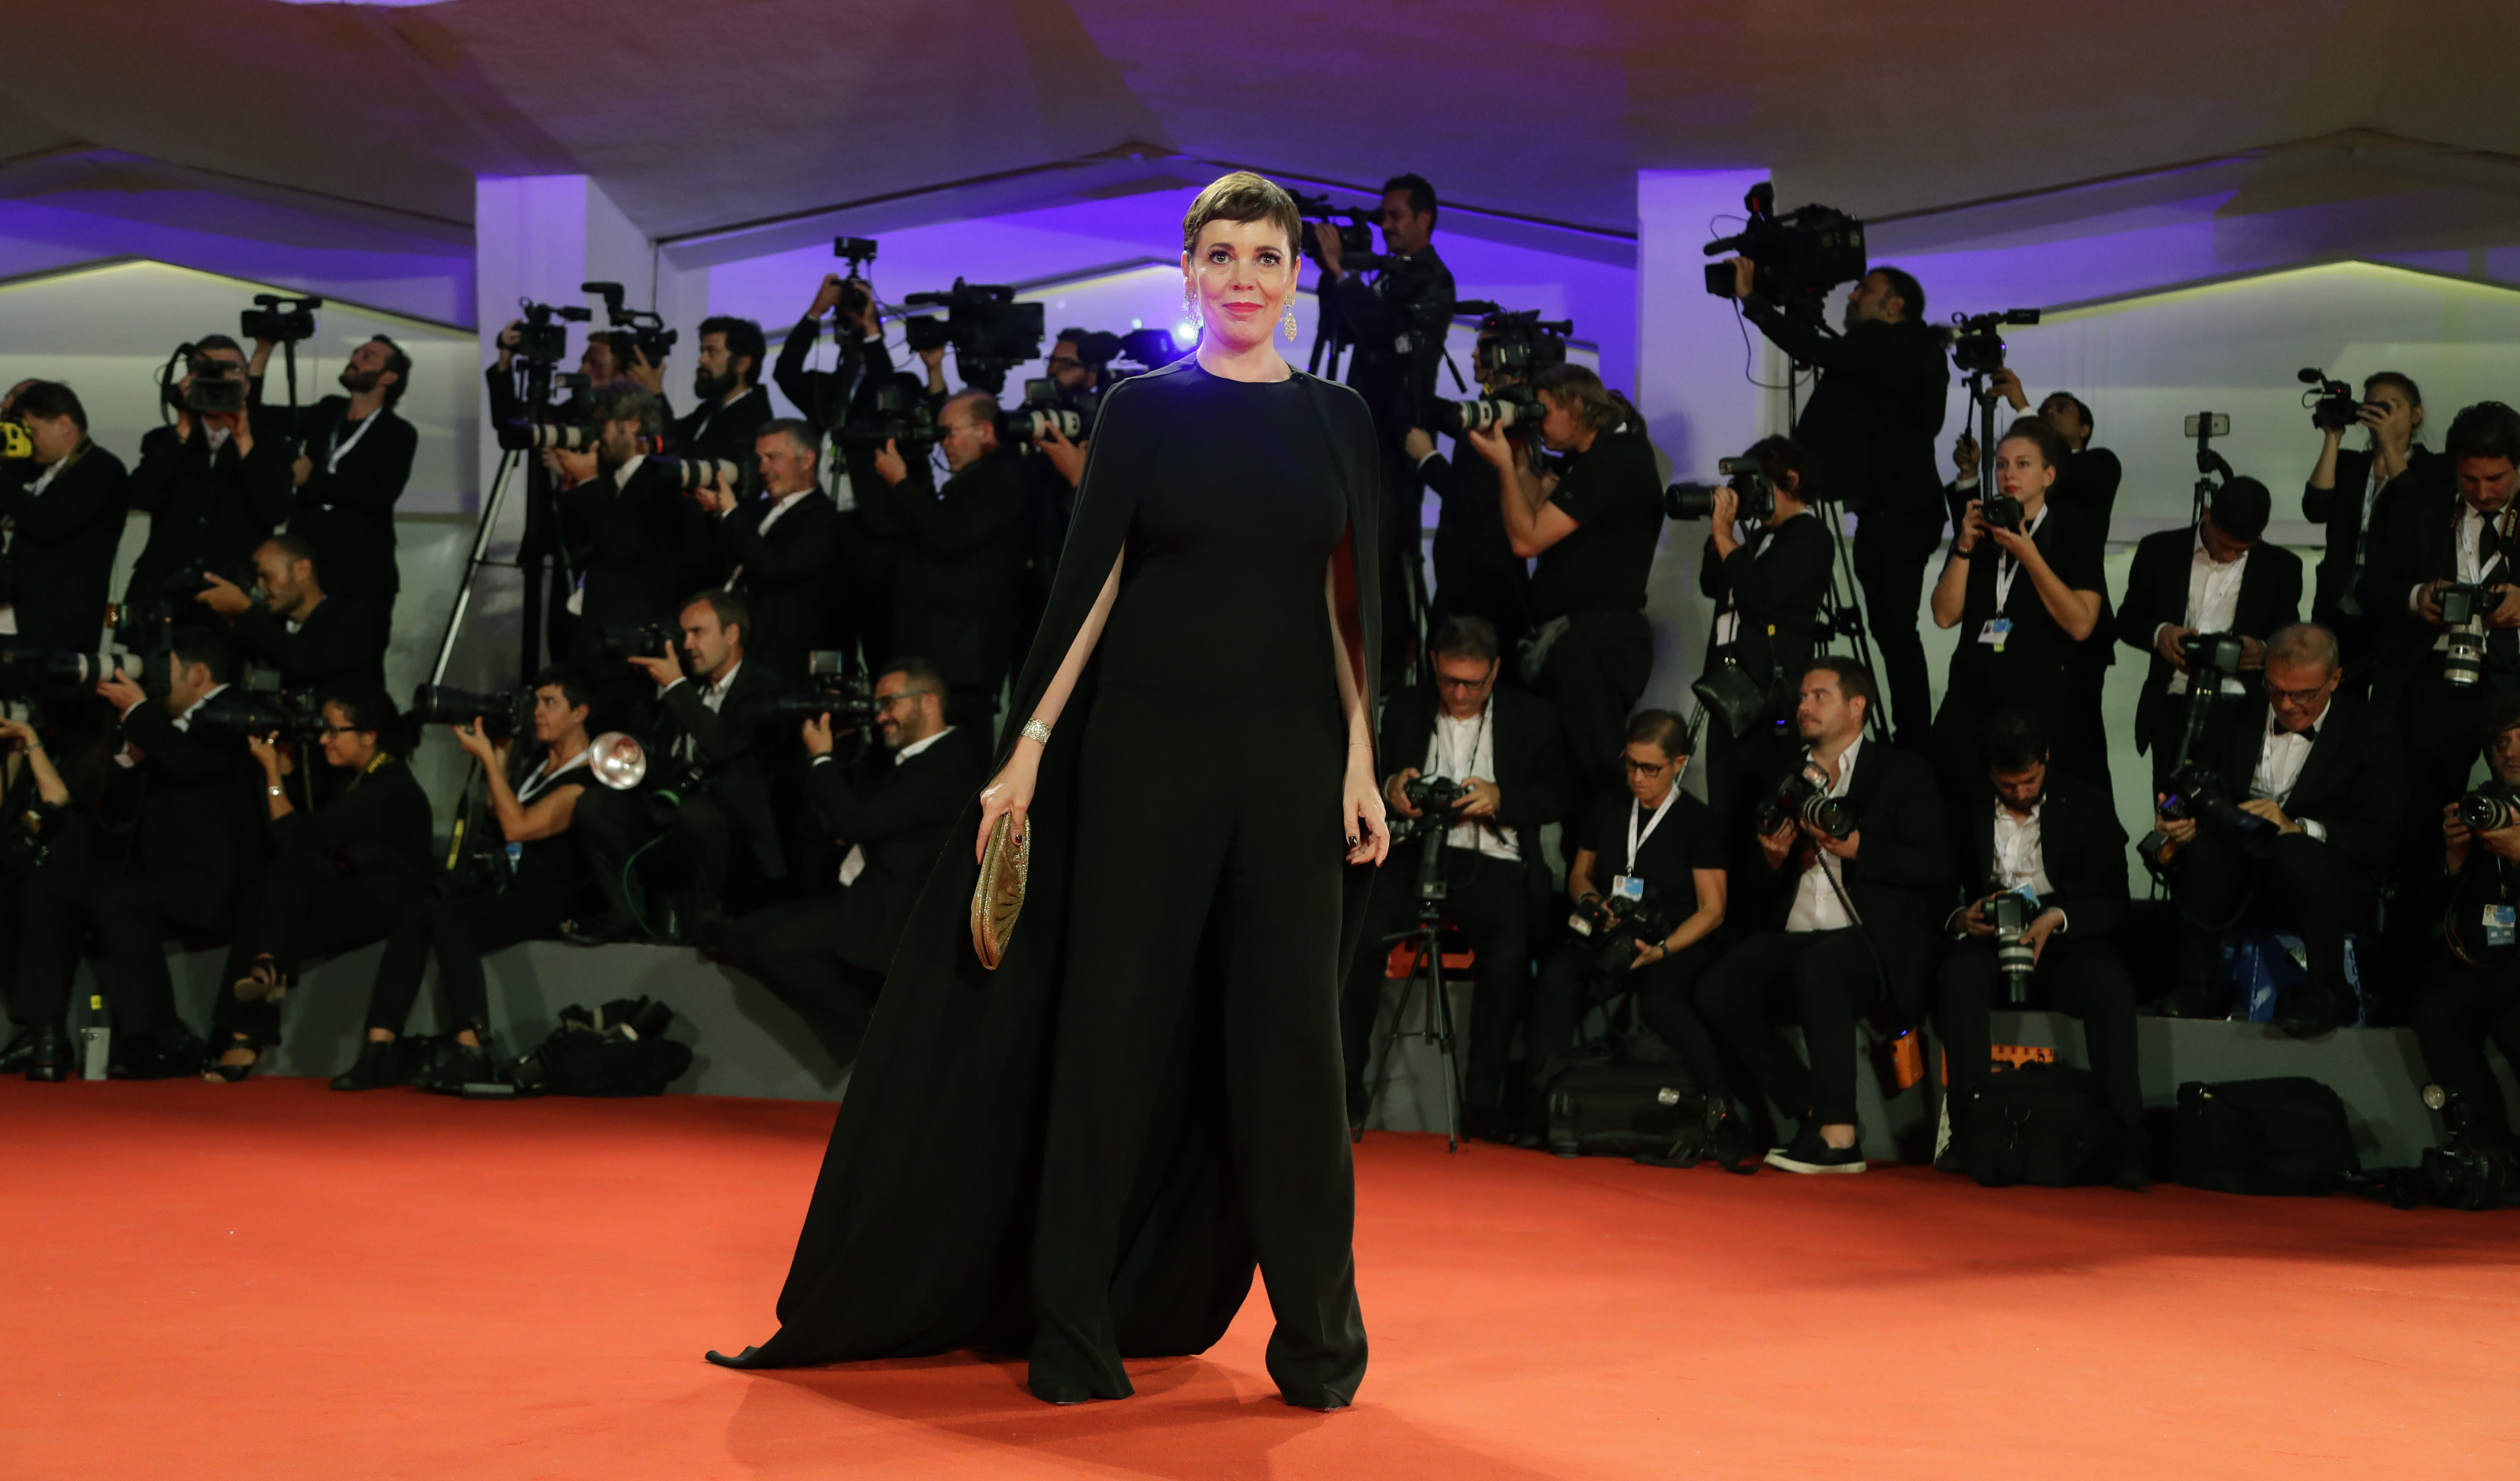 Actress Olivia Colman poses for photographers upon arrival at the premiere of the film 'The Favourite' at the 75th edition of the Venice Film Festival in Venice, Italy, Thursday, Aug. 30 , 2018. (AP Photo/Kirsty Wigglesworth)